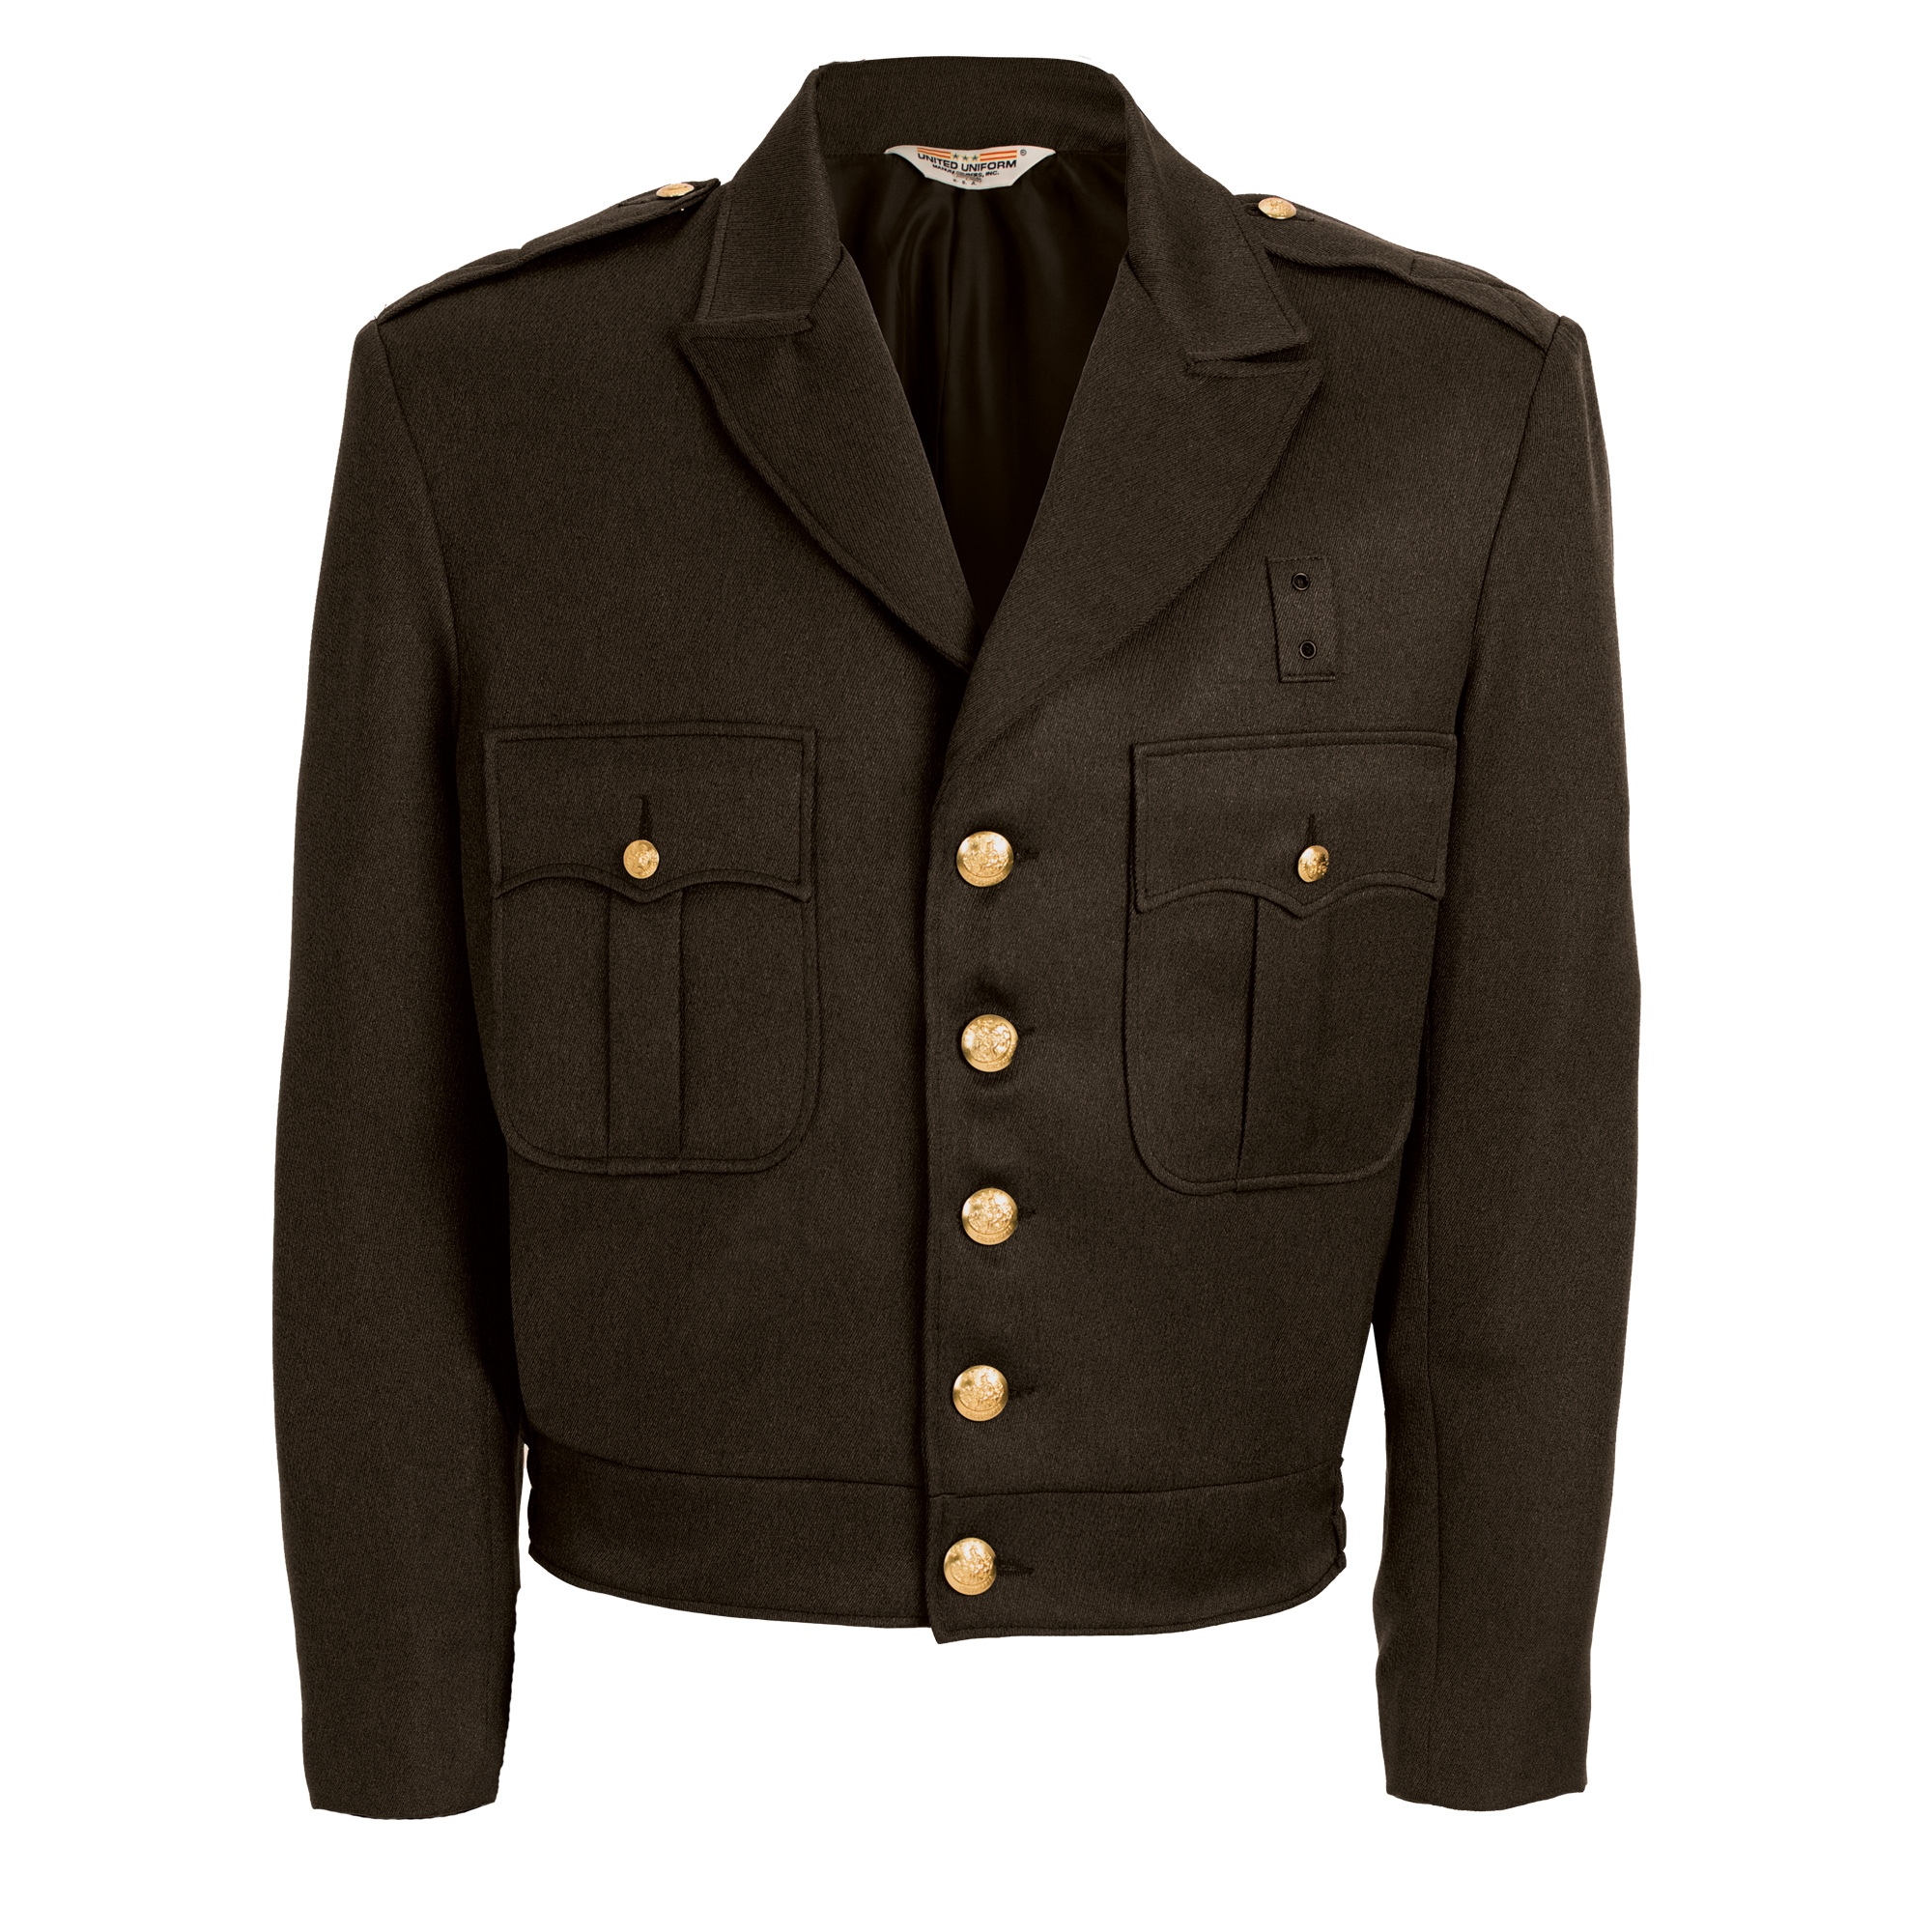 55% Polyester and 45% Wool Brown Button Up Ike Jacket